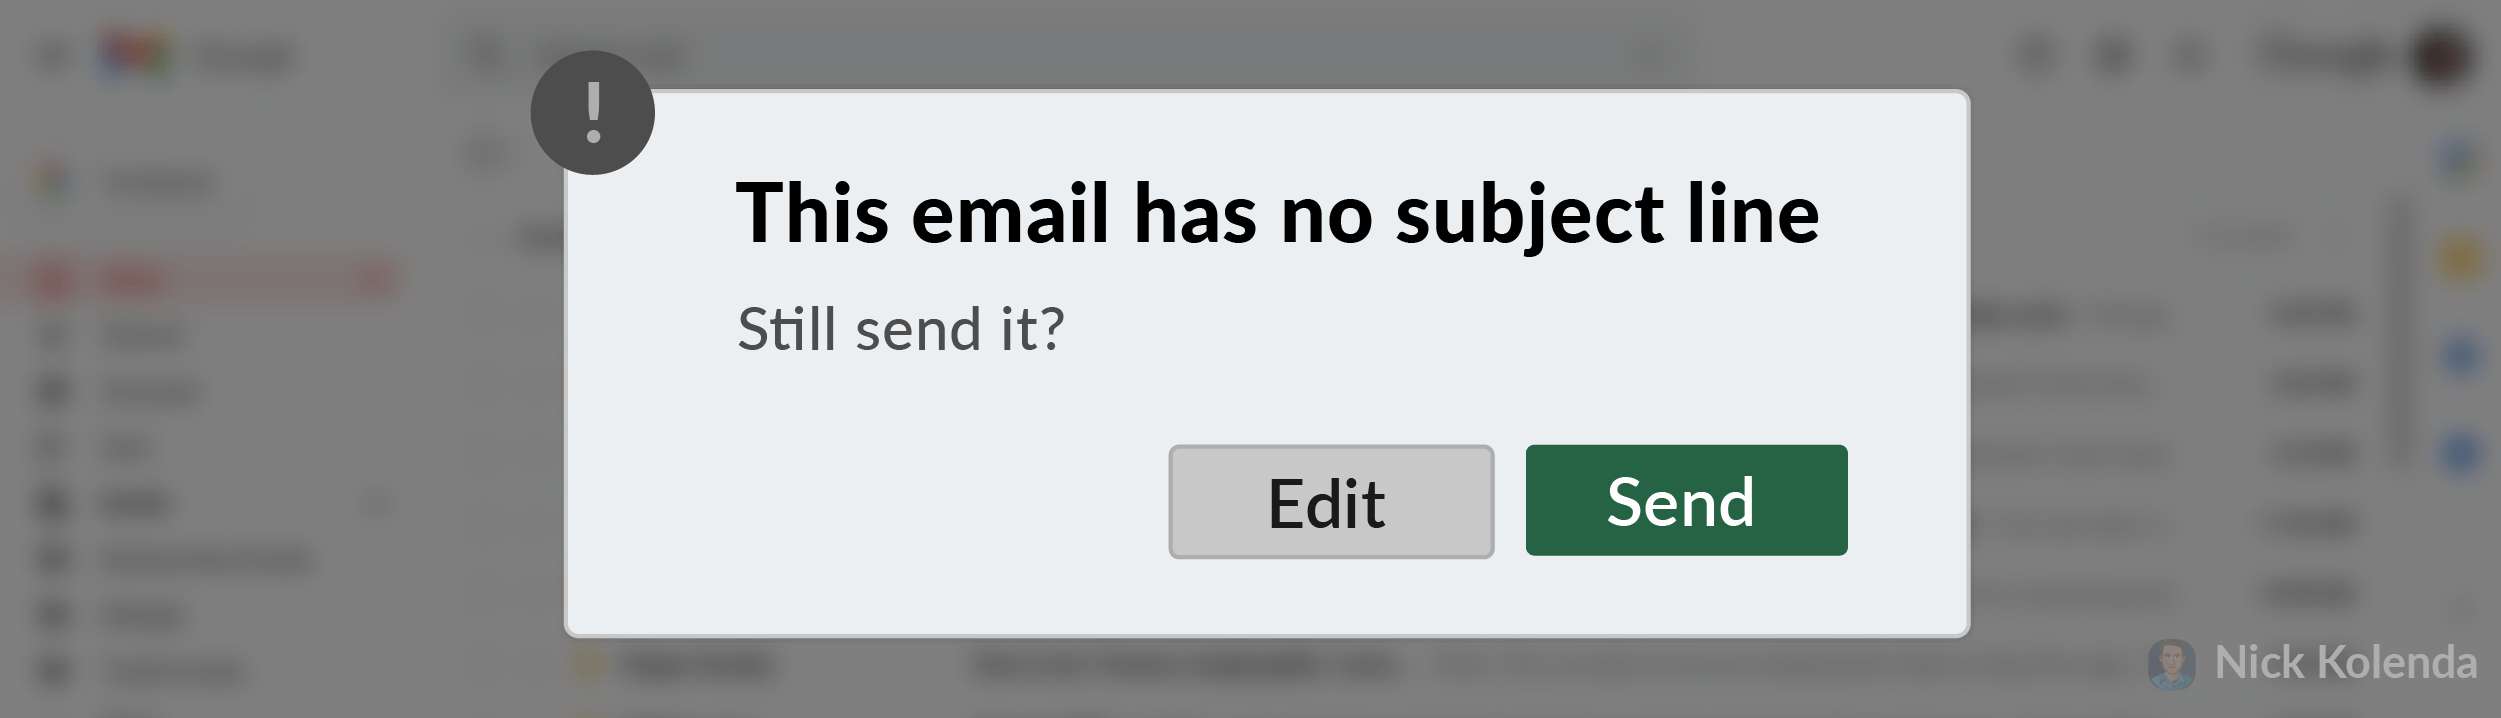 This email has no subject line. Still send?